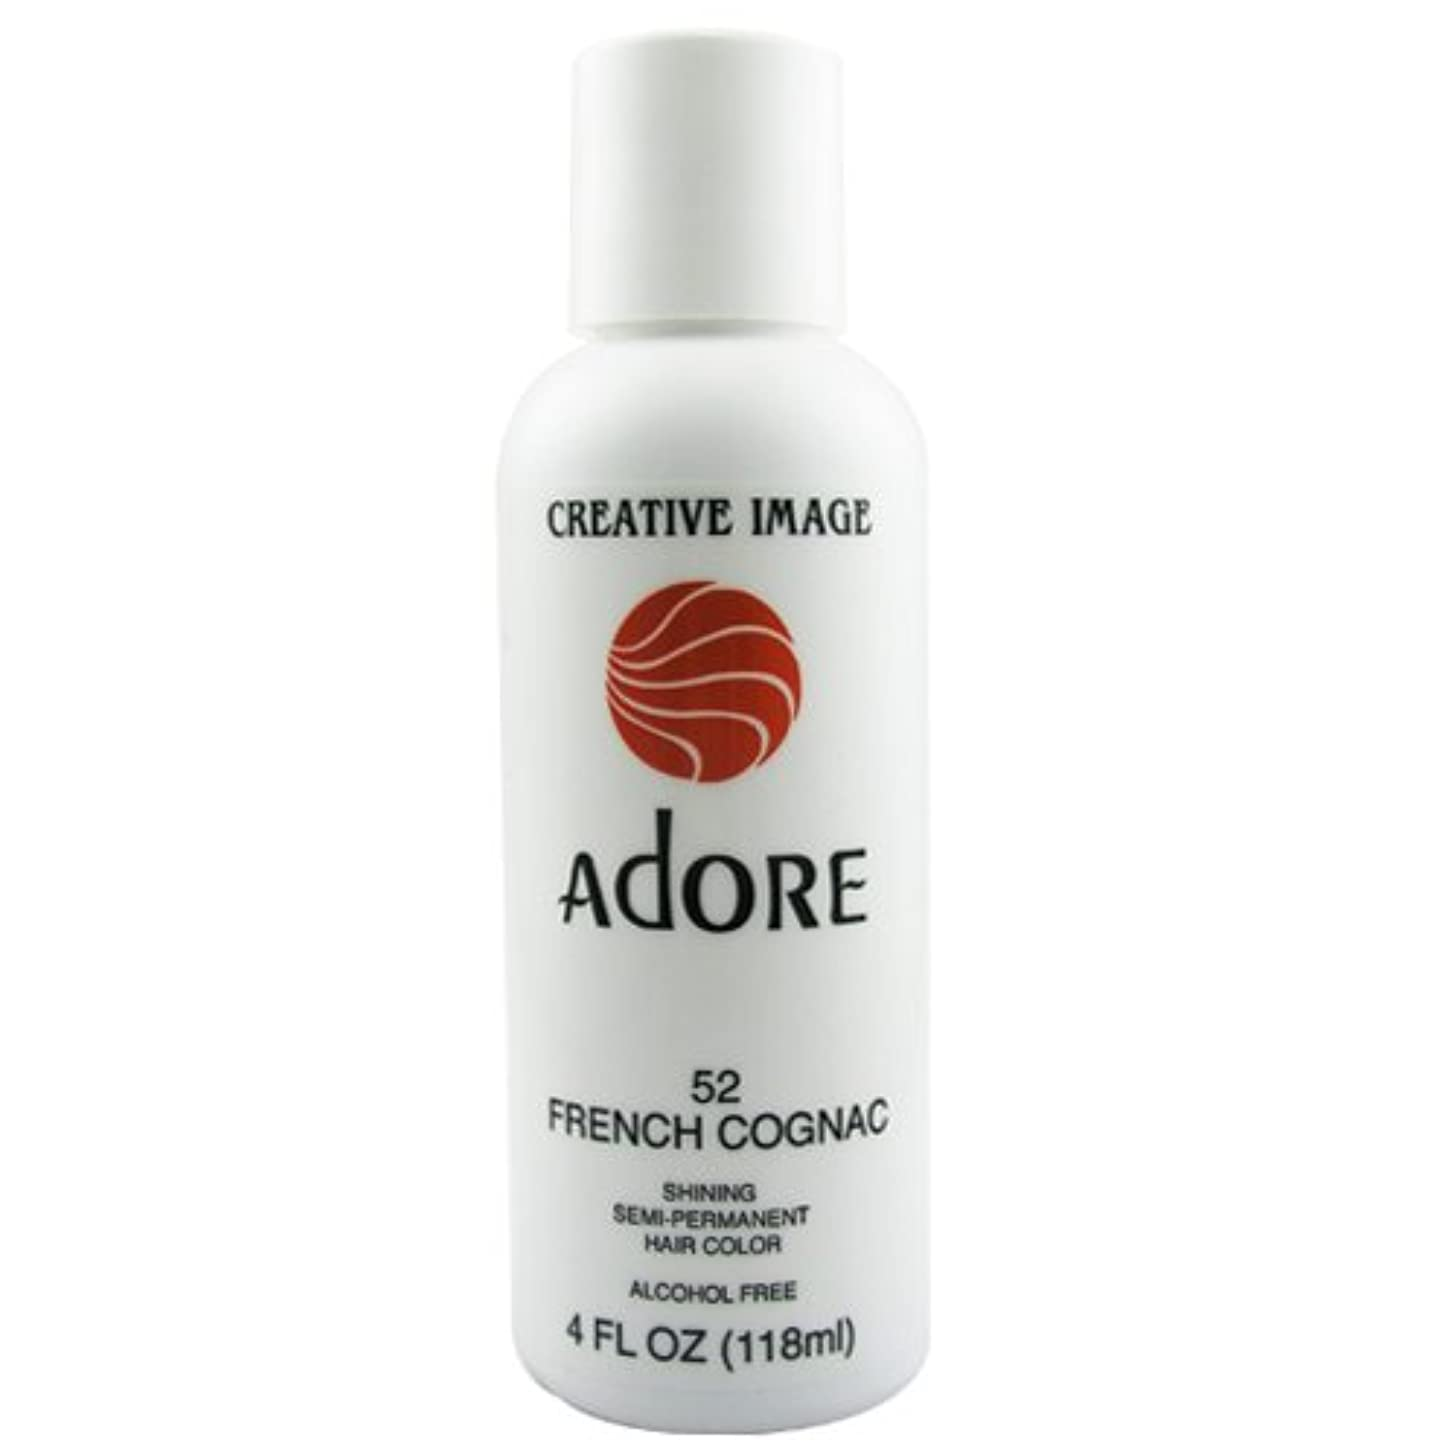 バブル一人でぞっとするようなAdore Creative Image Hair Color #52 French Cognac by Adore